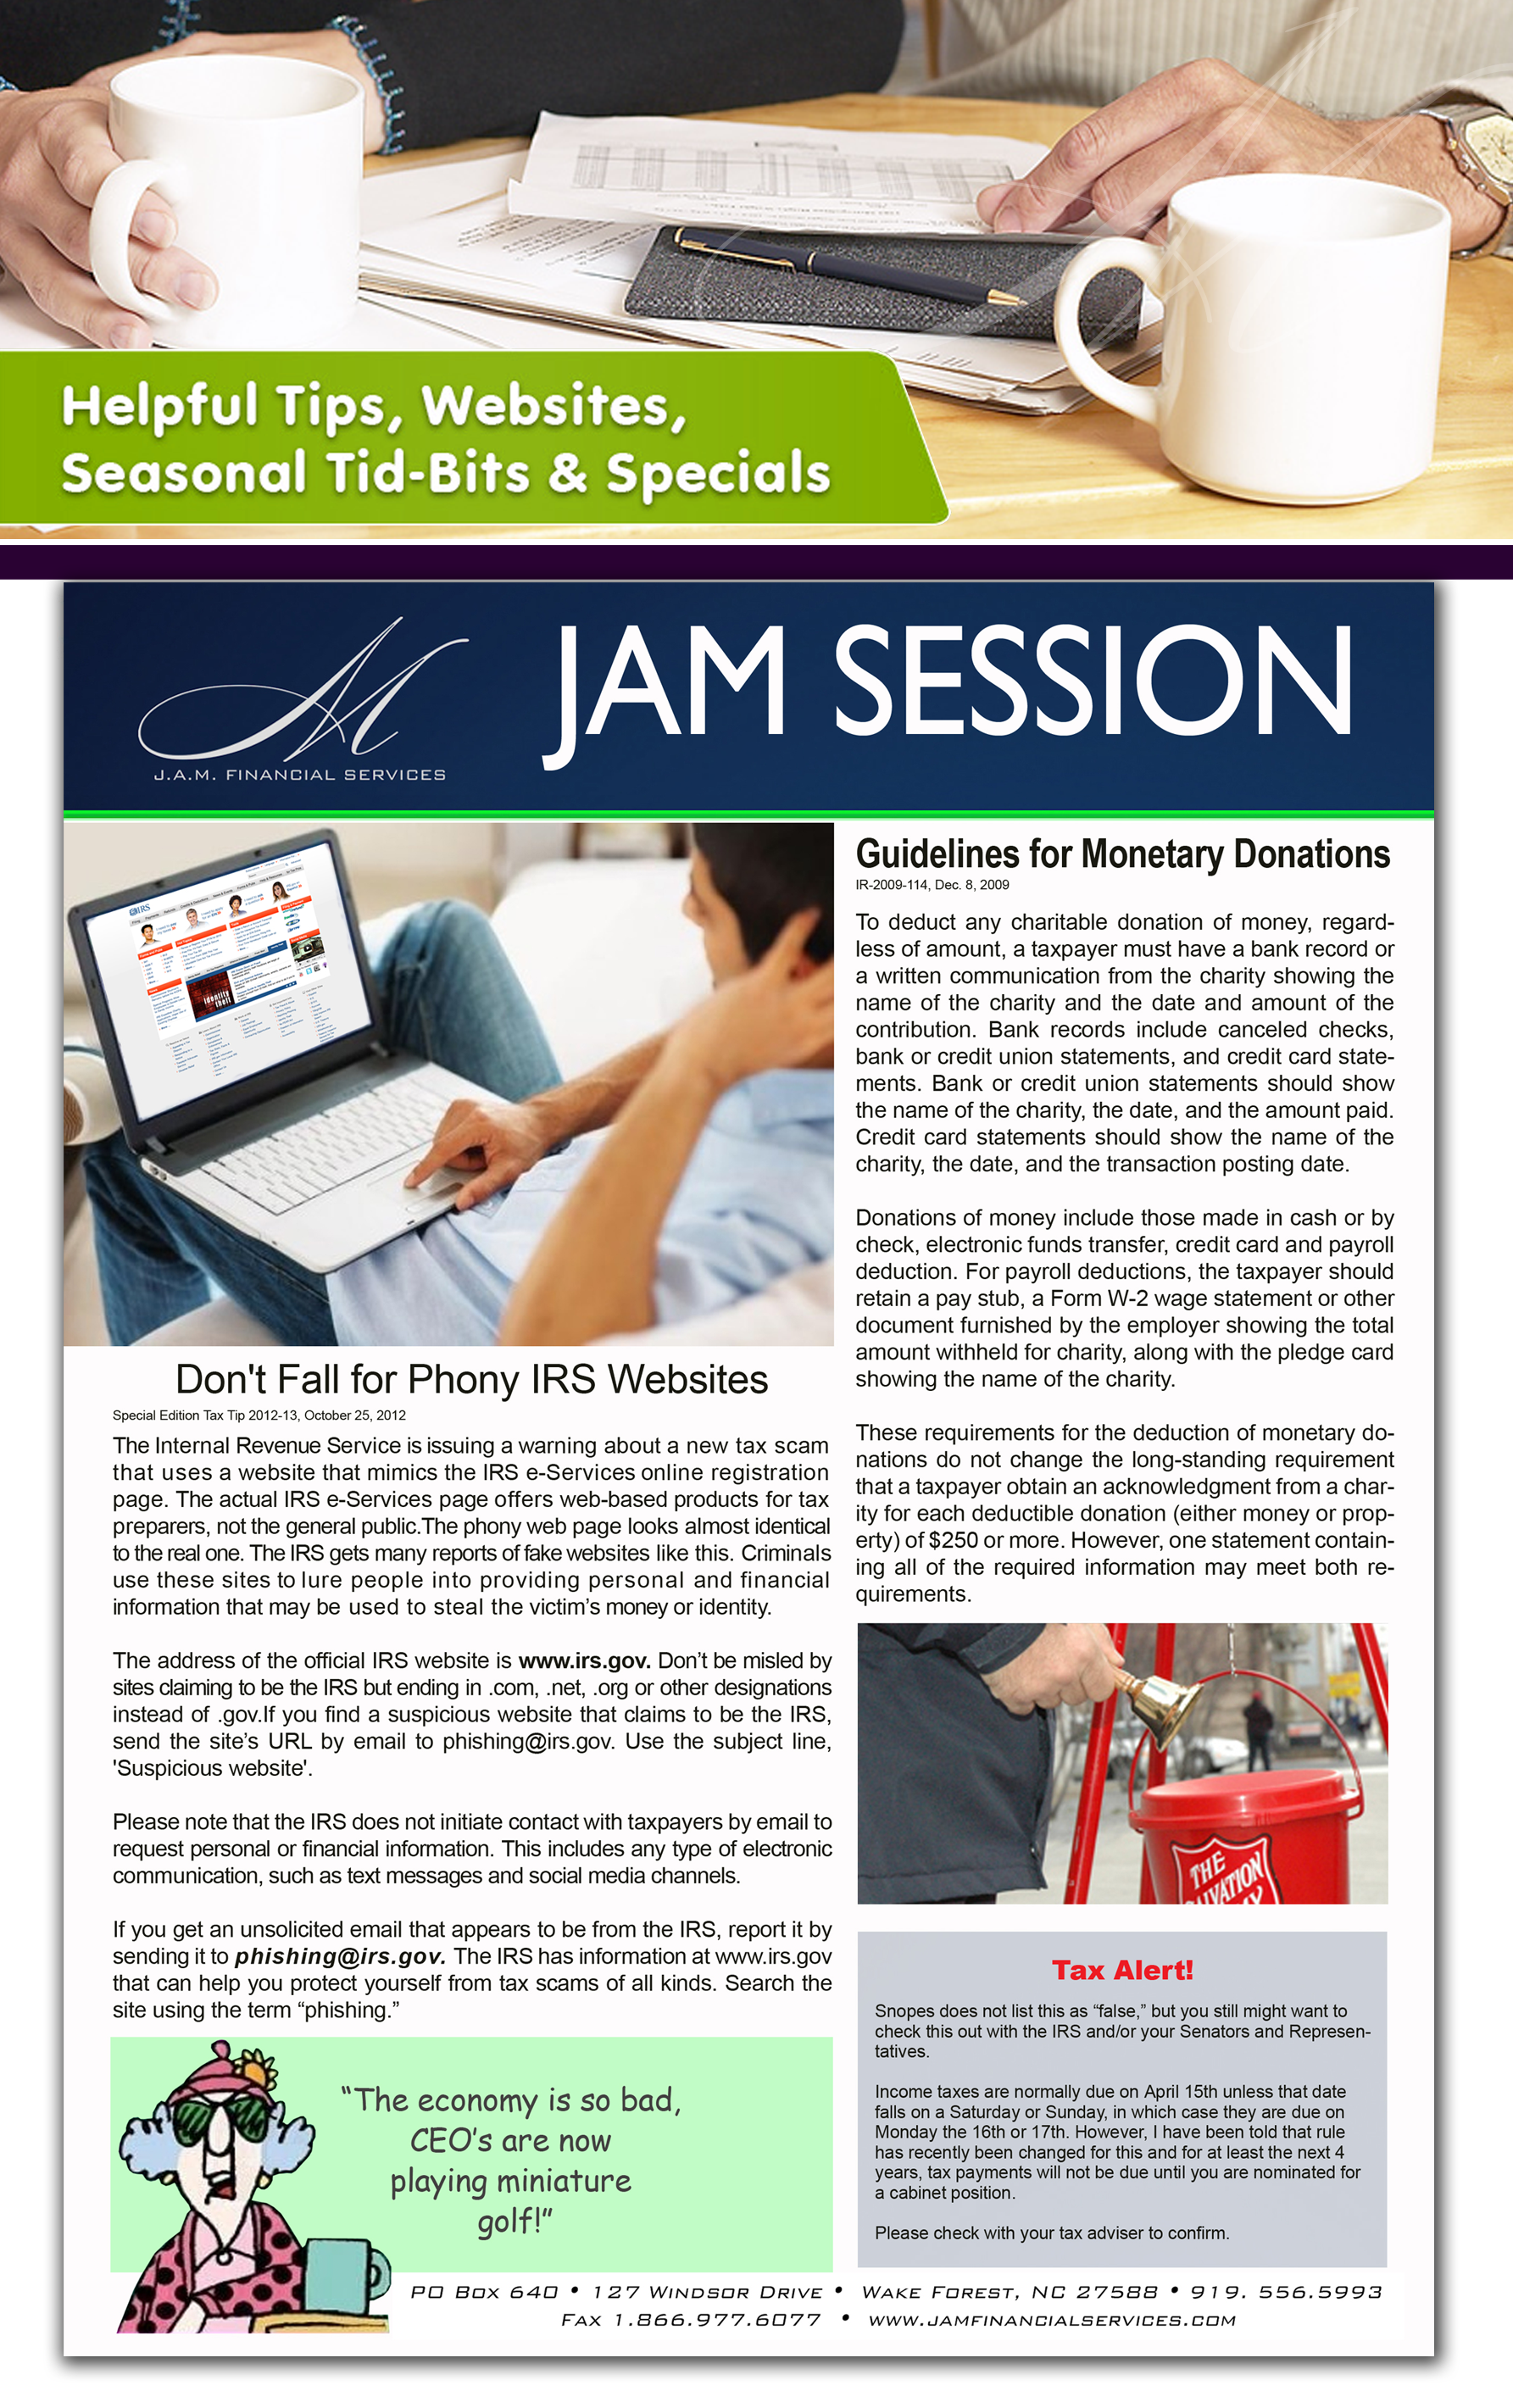 JAM_TIPS_page